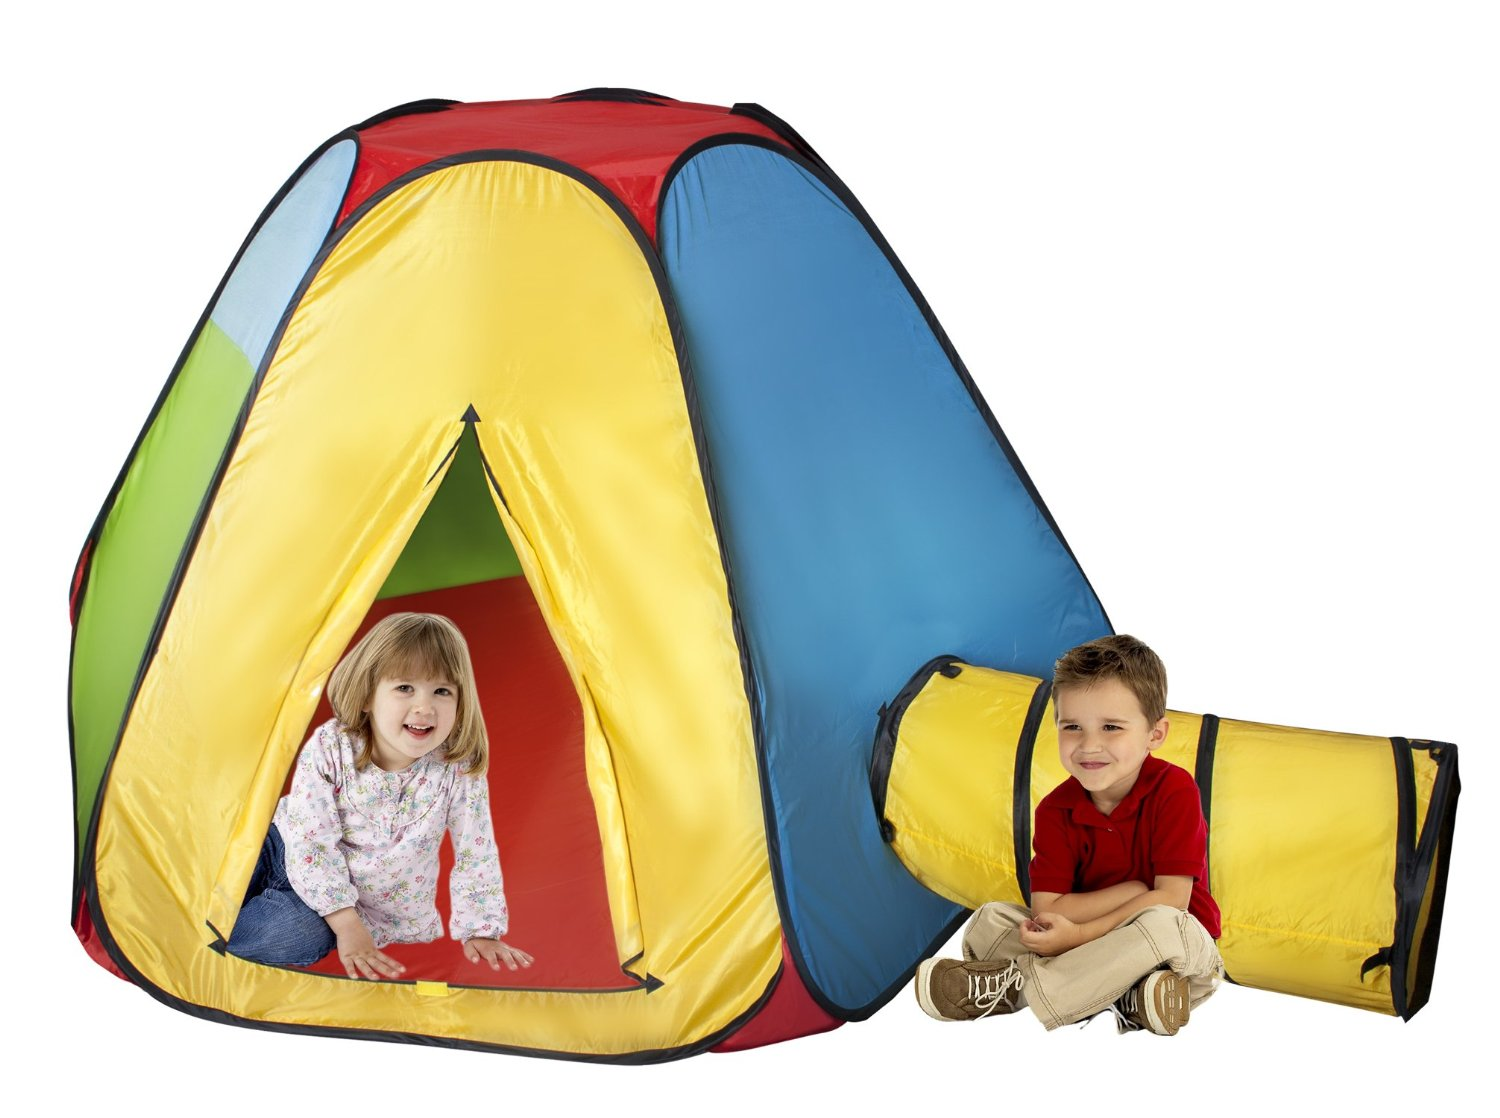 Hexagon Playhut Tent u0026 Tunnel  sc 1 st  Brands On Sale & Kids Playhuts and Tents | Toys u0026 Games | brandsonsale.com